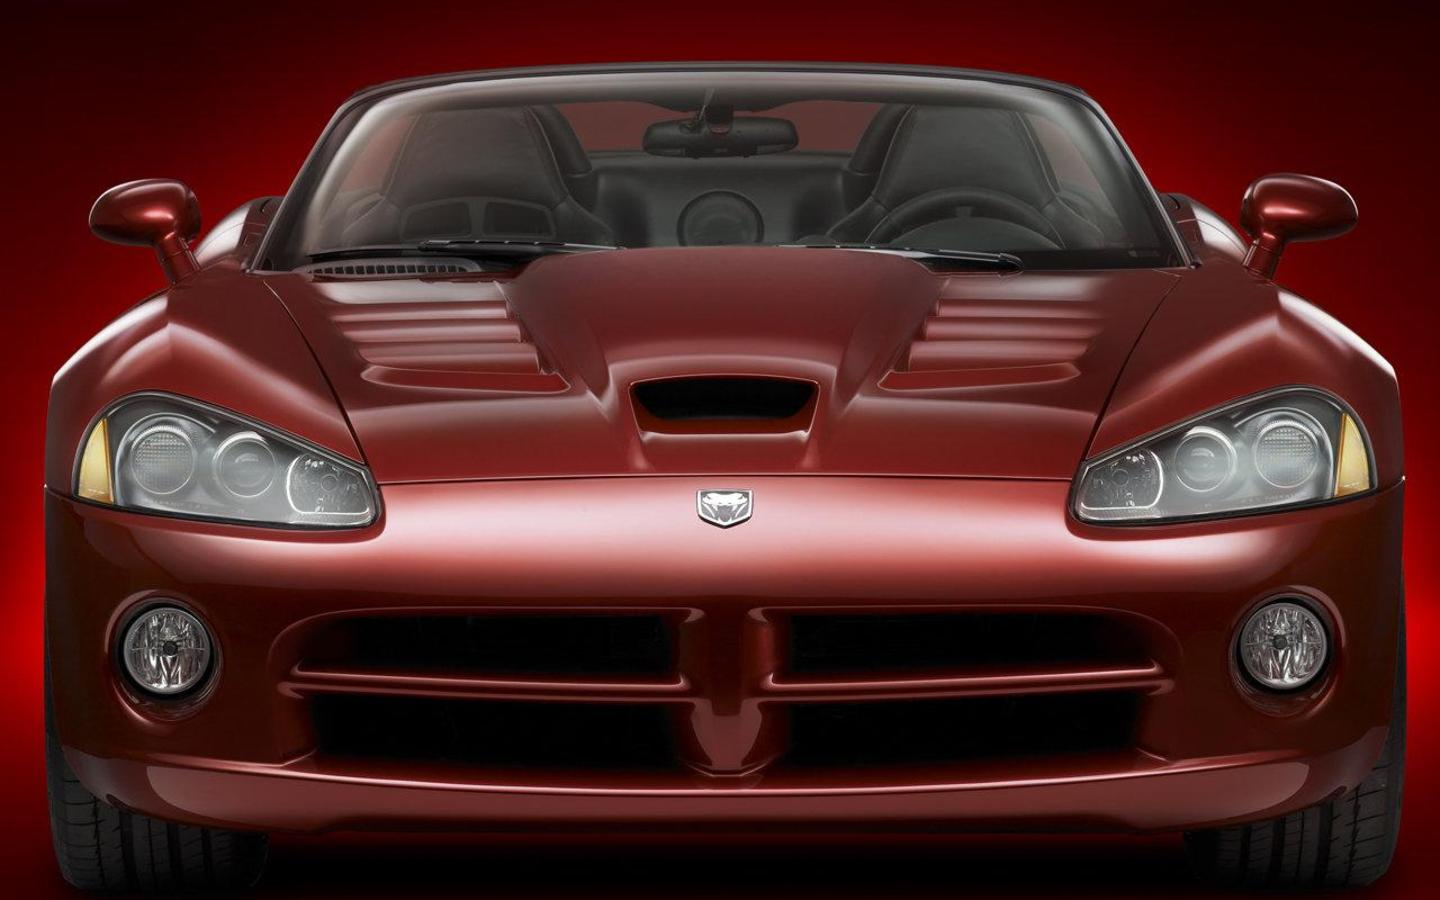 Dodge Viper Srt10 2008 1600×1200 Wallpaper 0b